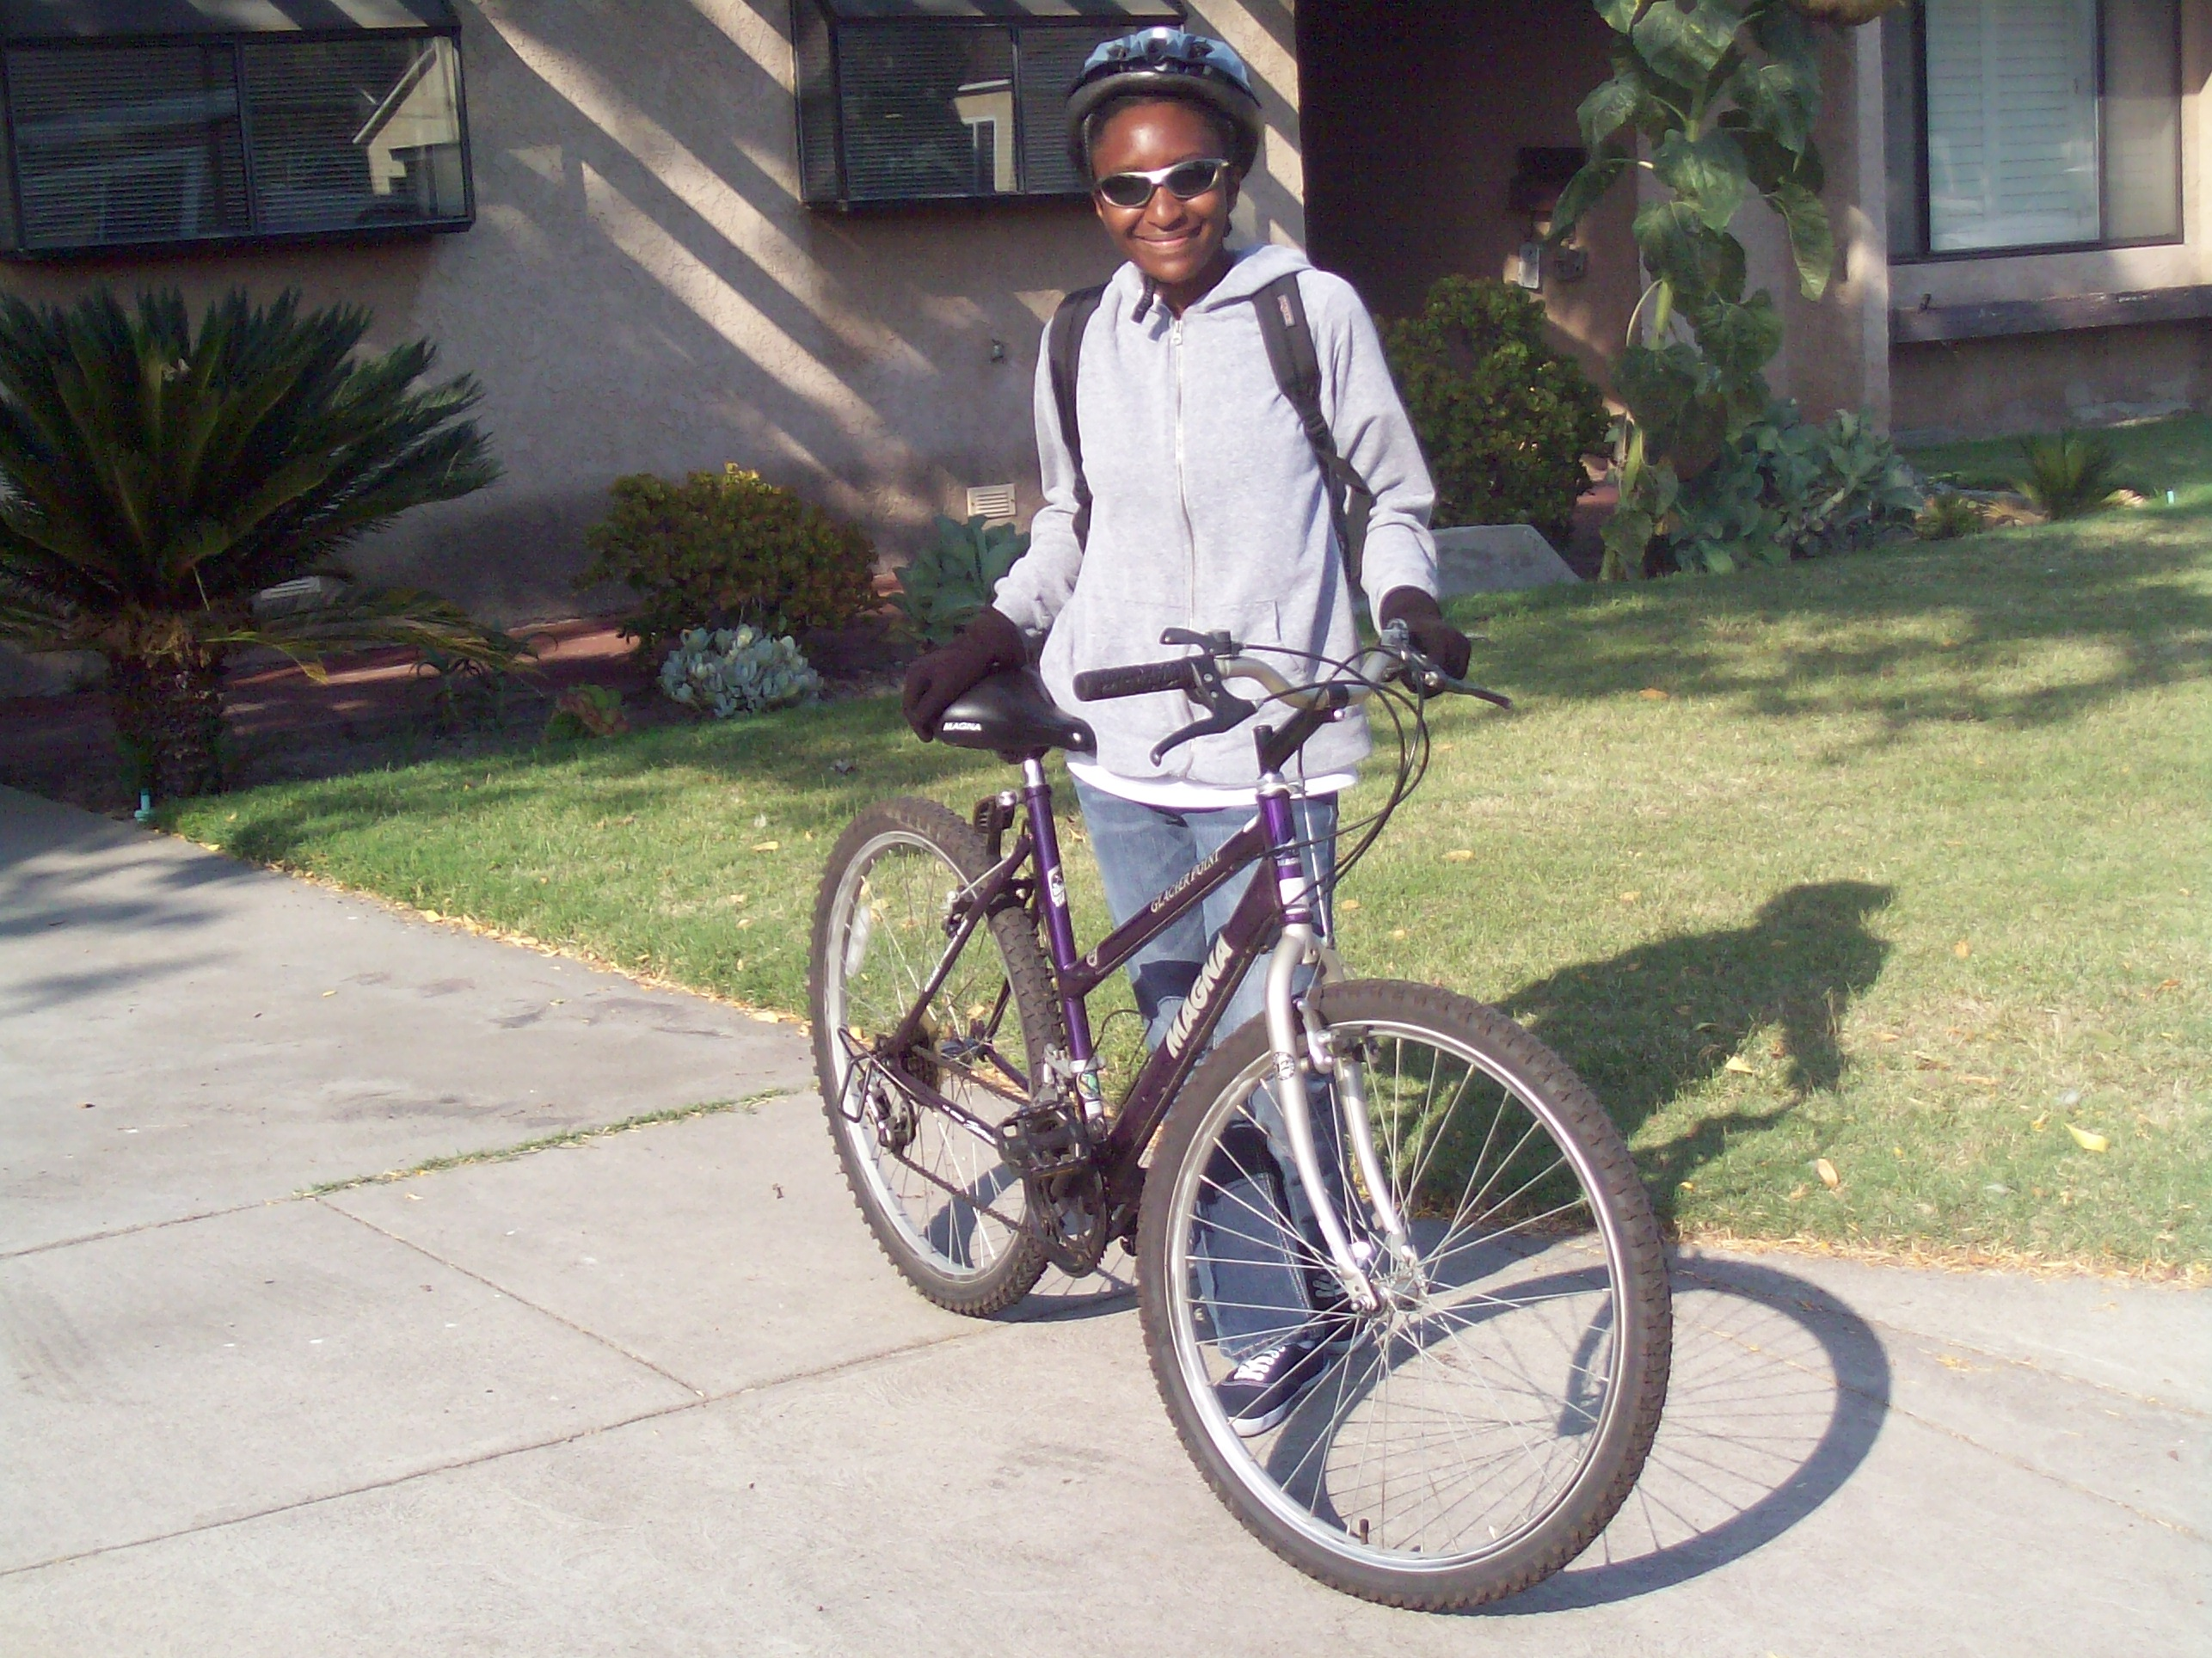 Breeanna with her mountain bike, helmet, and sunglasses getting ready to bike to work. Photo courtesy of Breeanna Taylor.